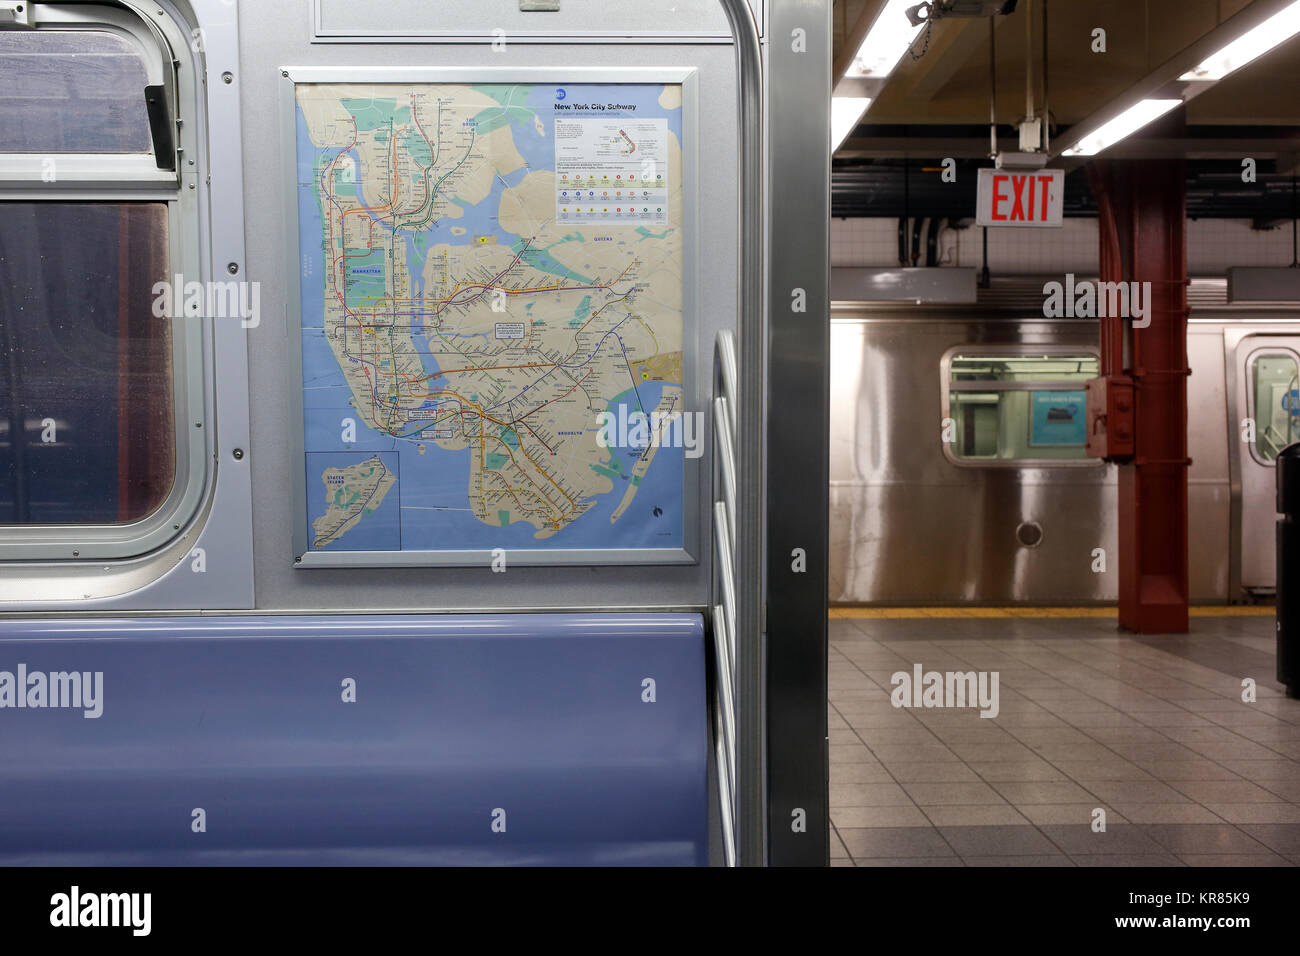 Train Subway Map New York.New York City Subway Map Displayed Inside Train Stock Photo